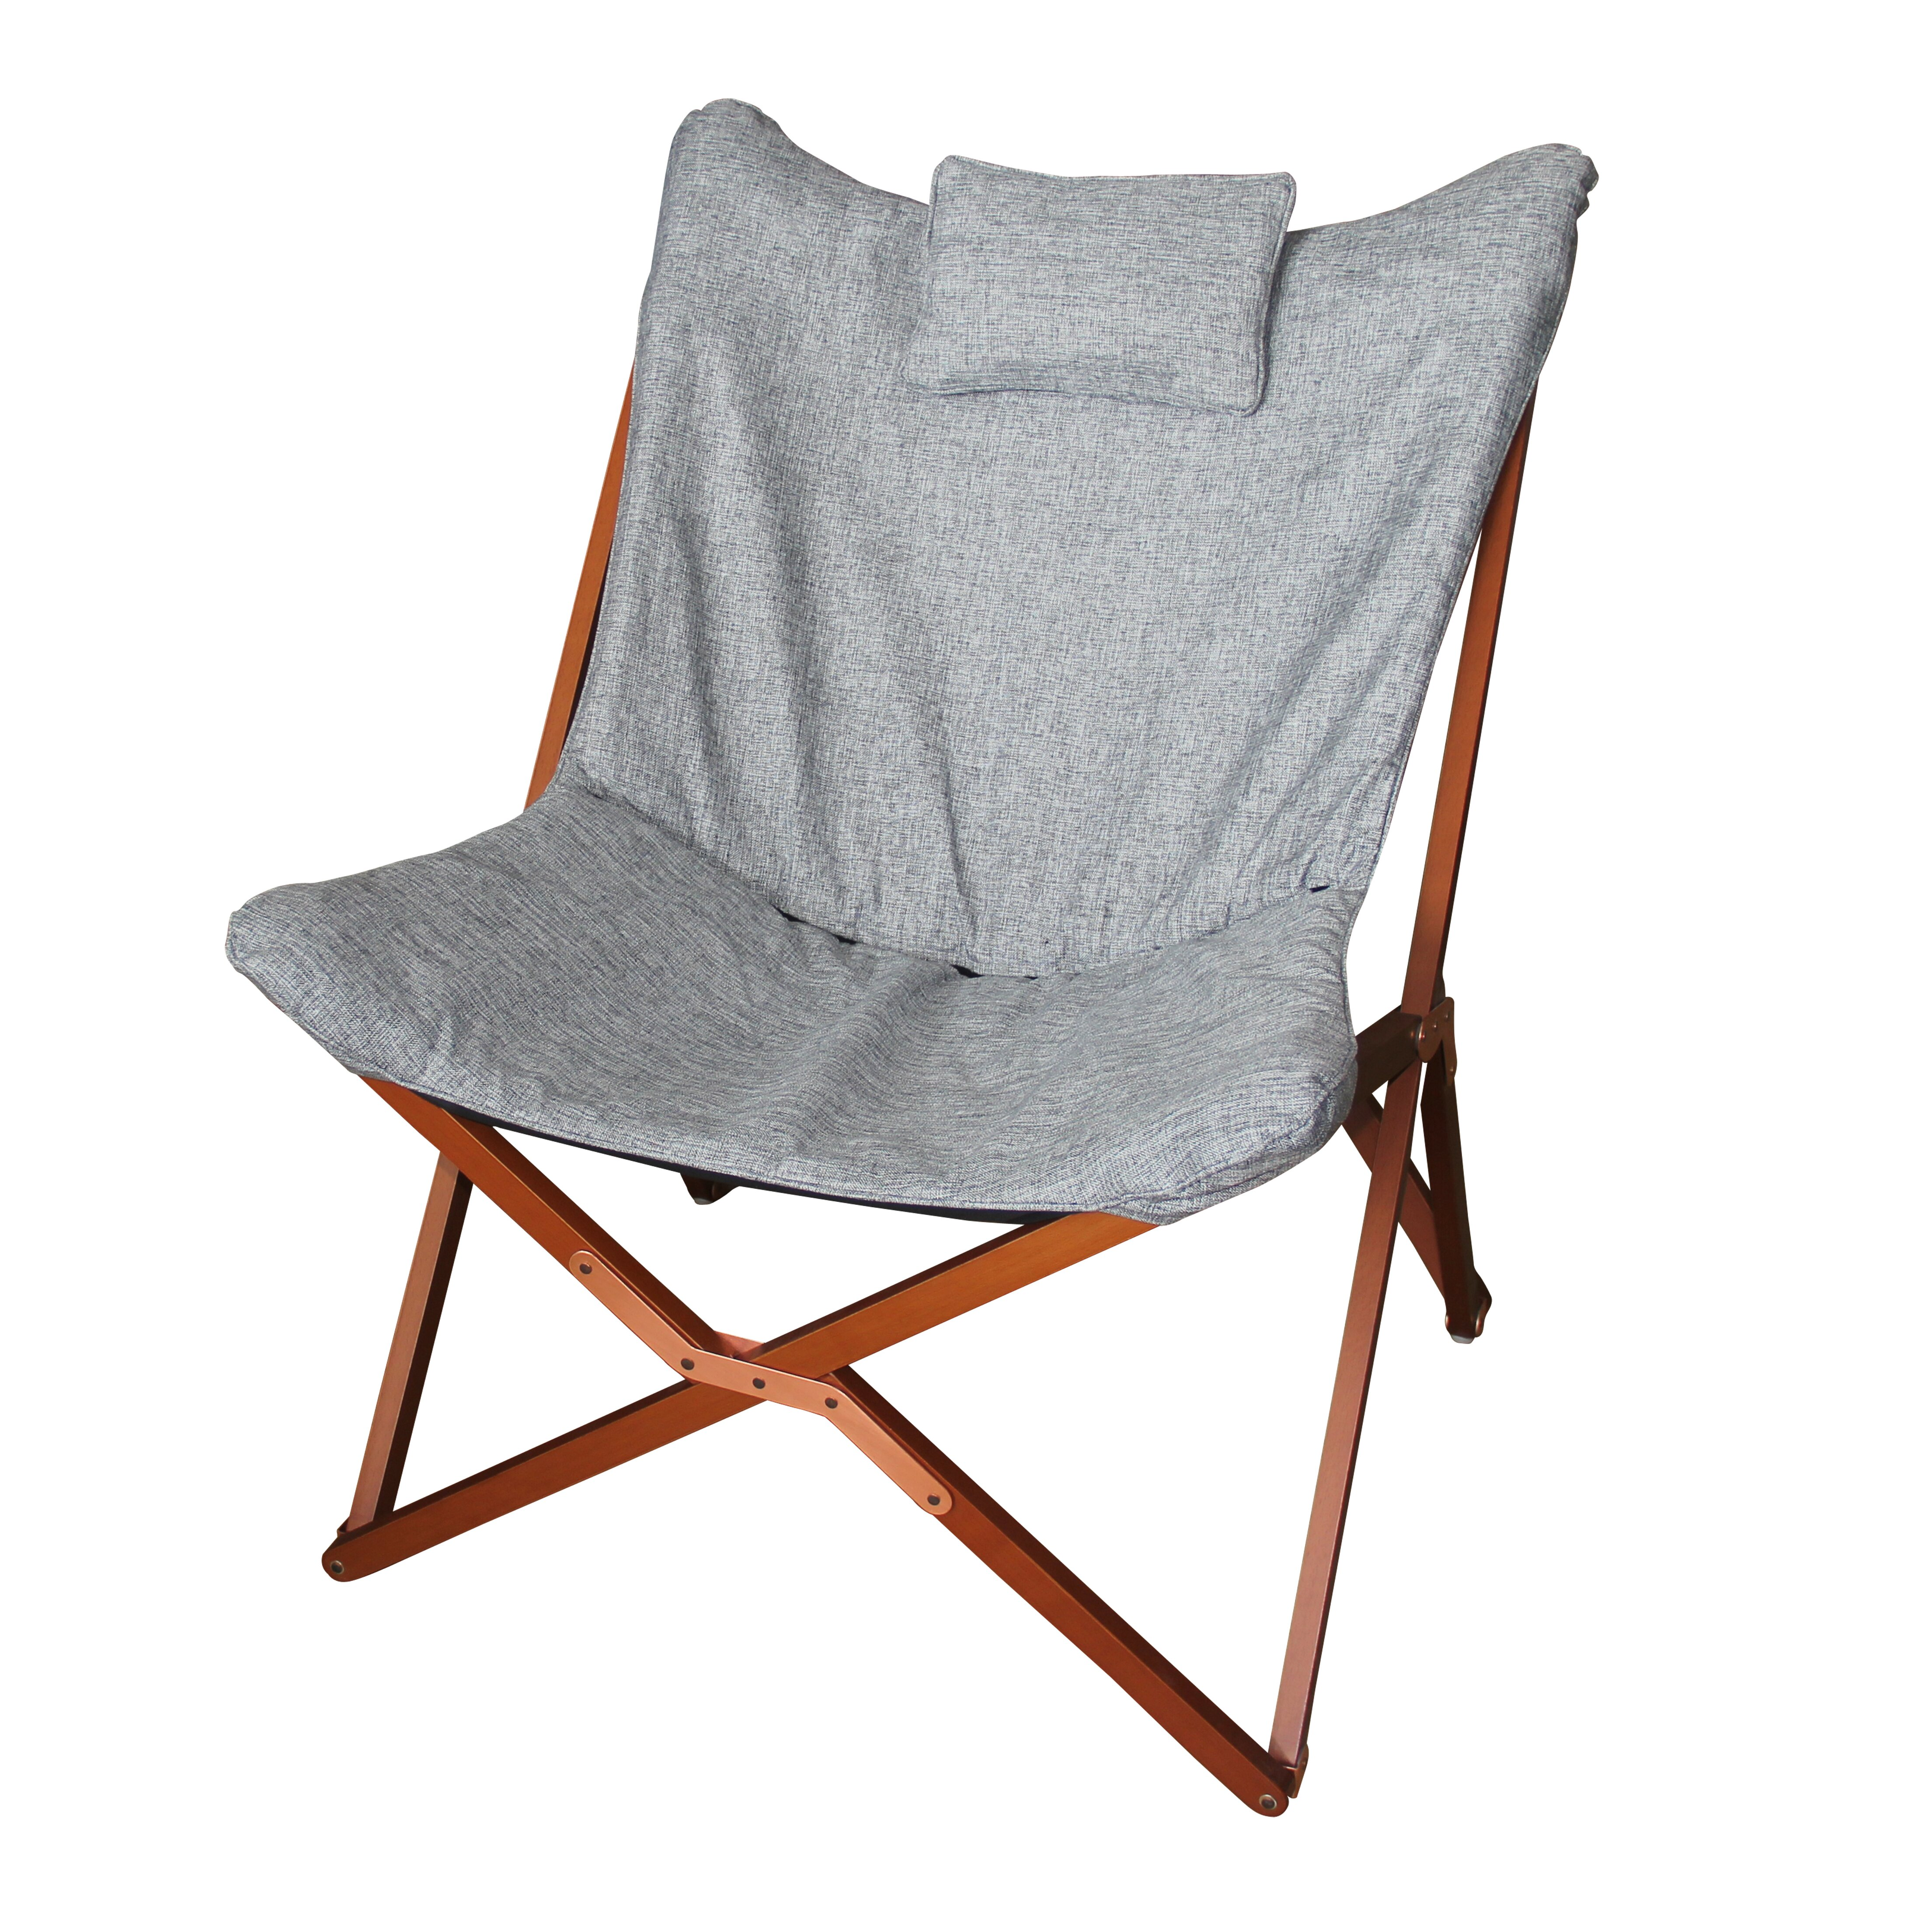 Idea nuova realtree outdoor butterfly papasan chair - Butterfly Folding Chair